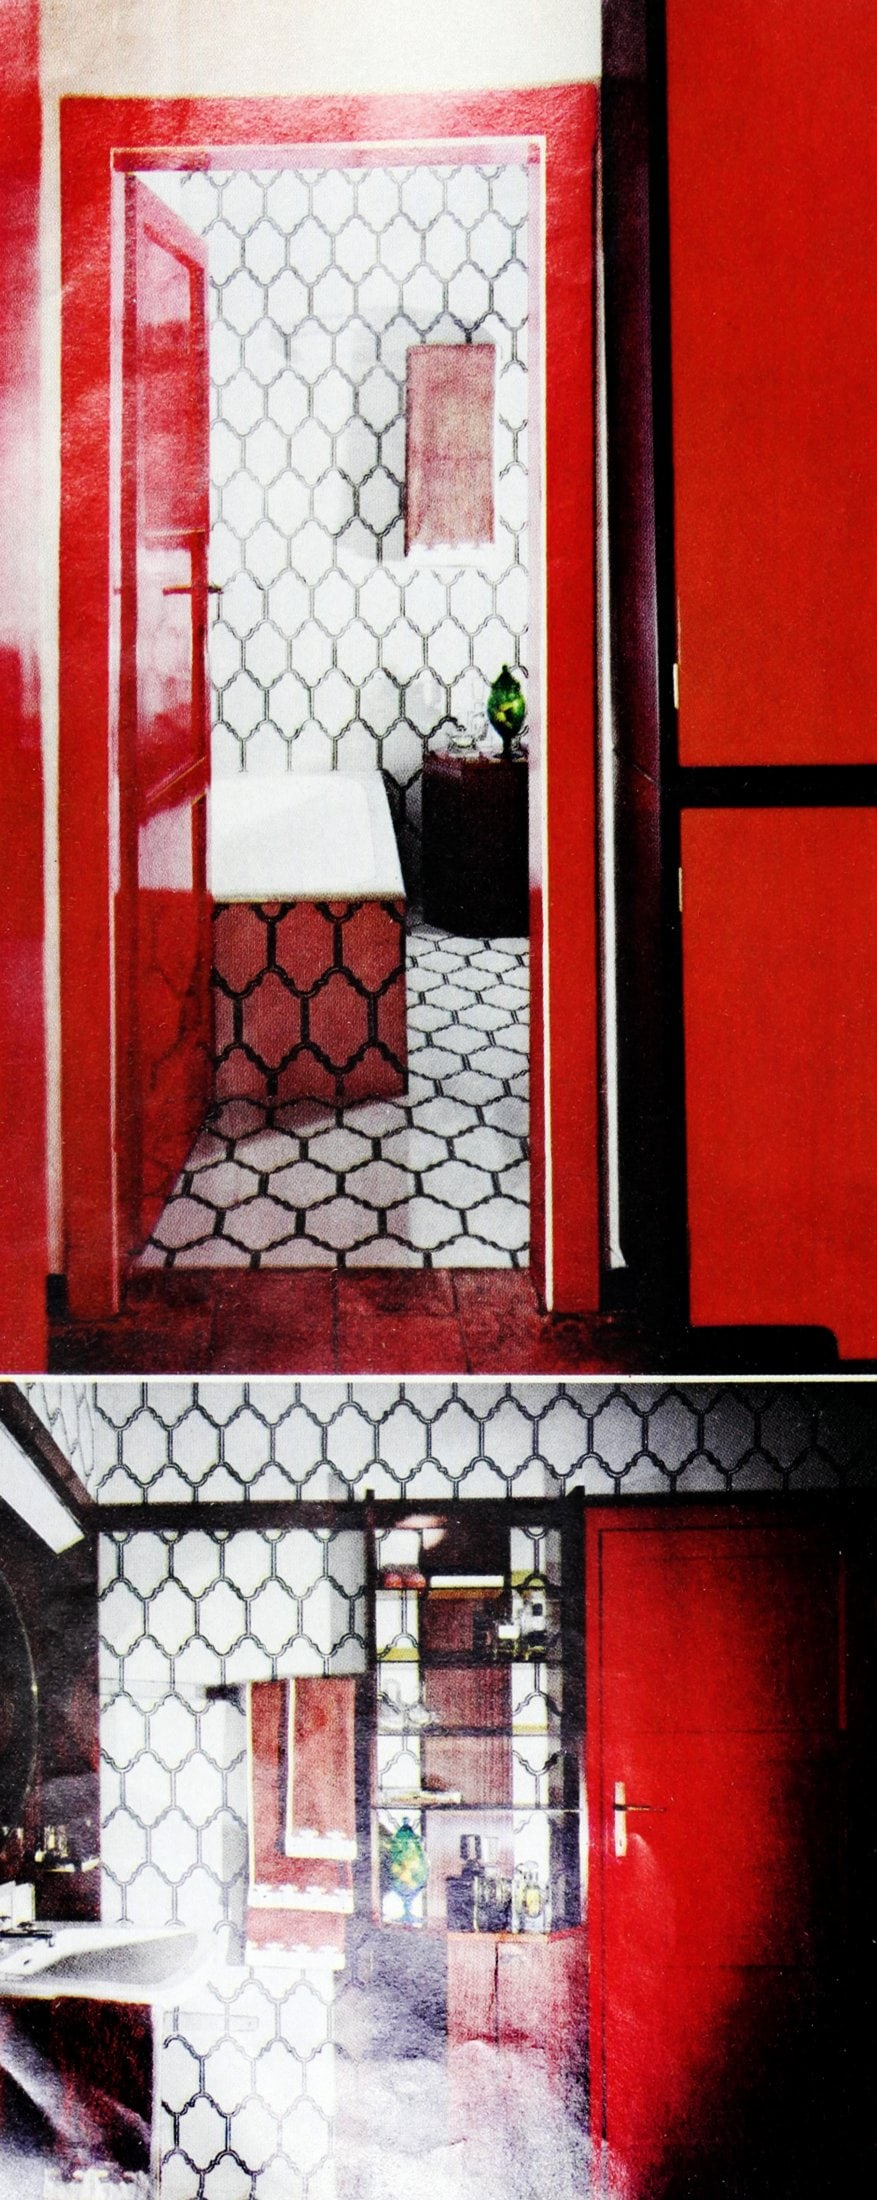 Eye-popping red and black vintage bathroom tile design ideas